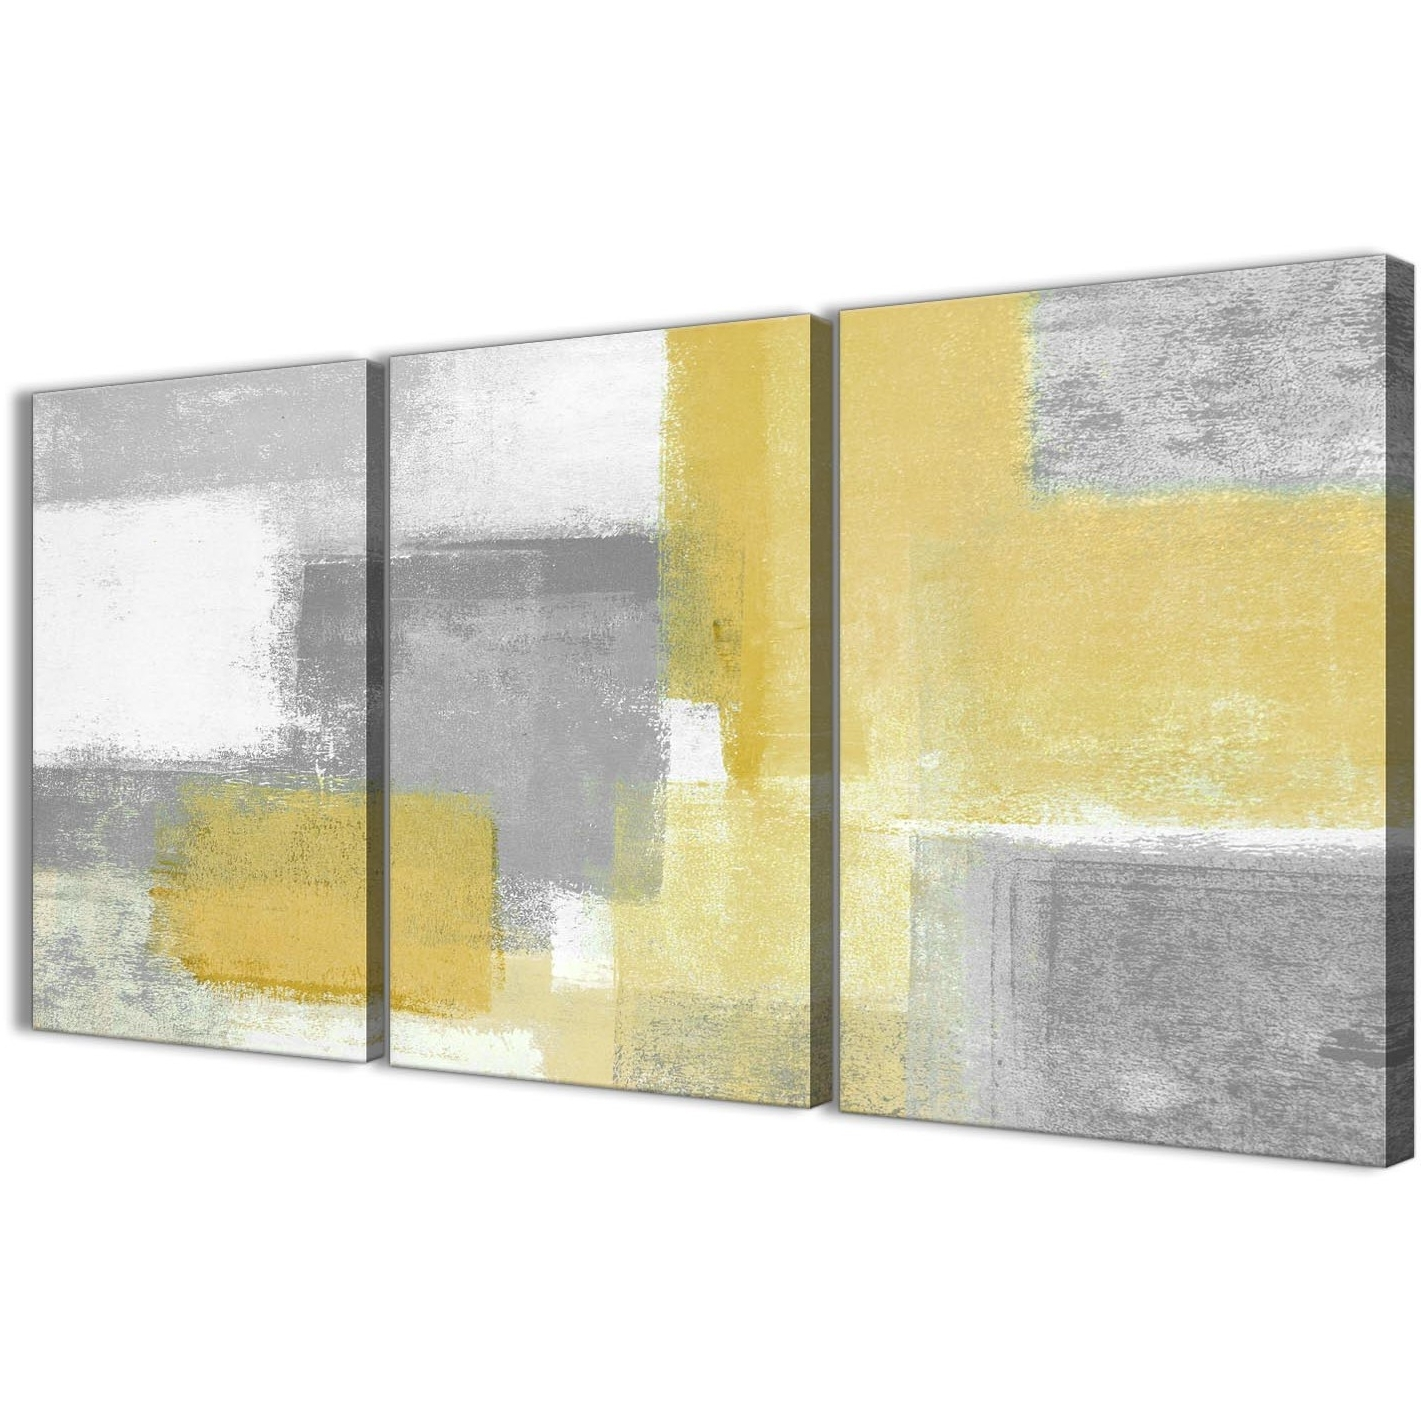 Preferred Grey Canvas Wall Art Pertaining To 3 Panel Mustard Yellow Grey Kitchen Canvas Wall Art Decor (View 10 of 15)